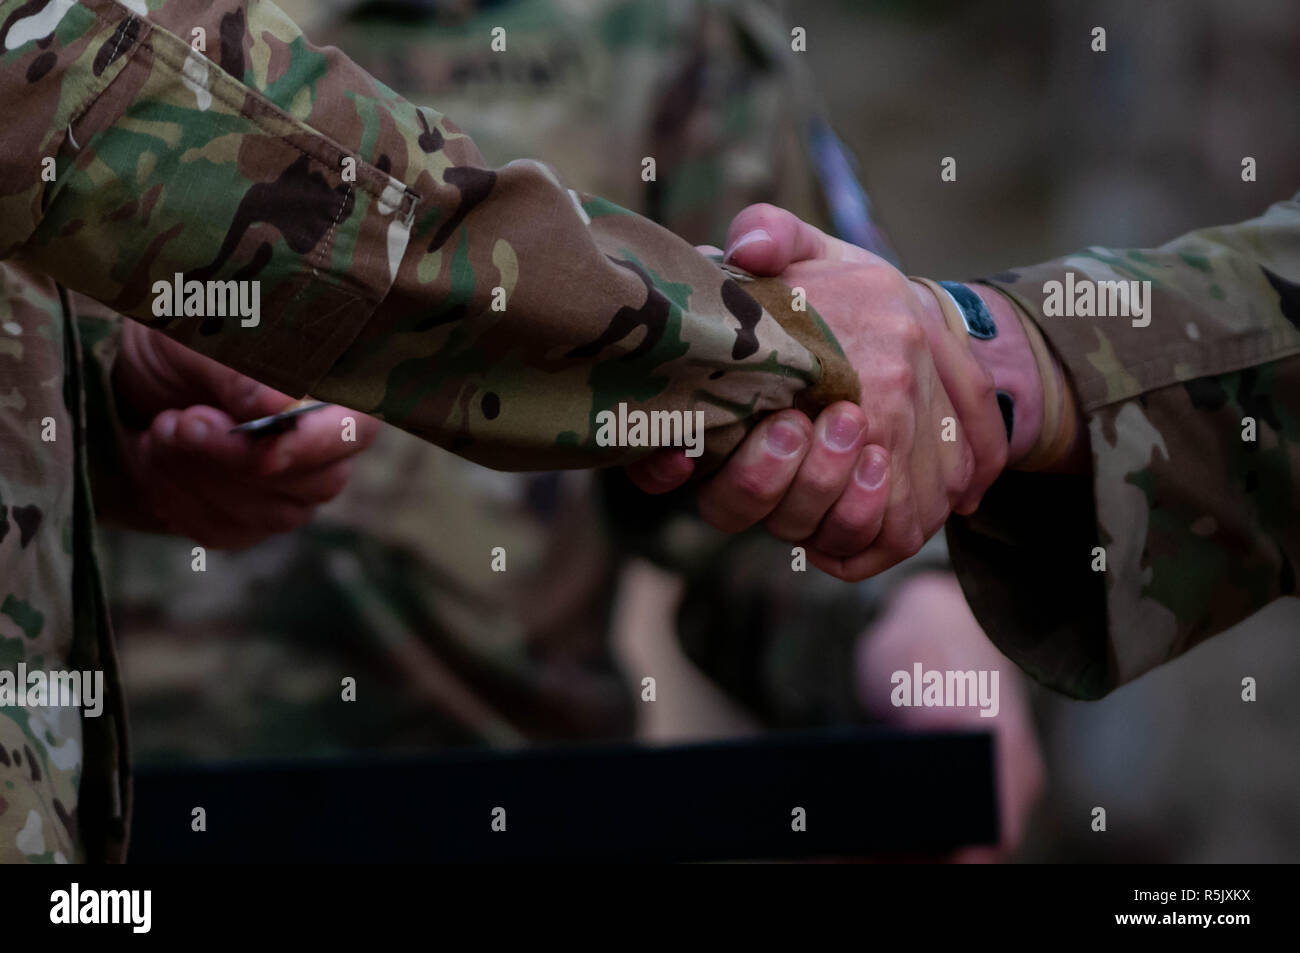 Royal Netherlands Army Stock Photos & Royal Netherlands Army